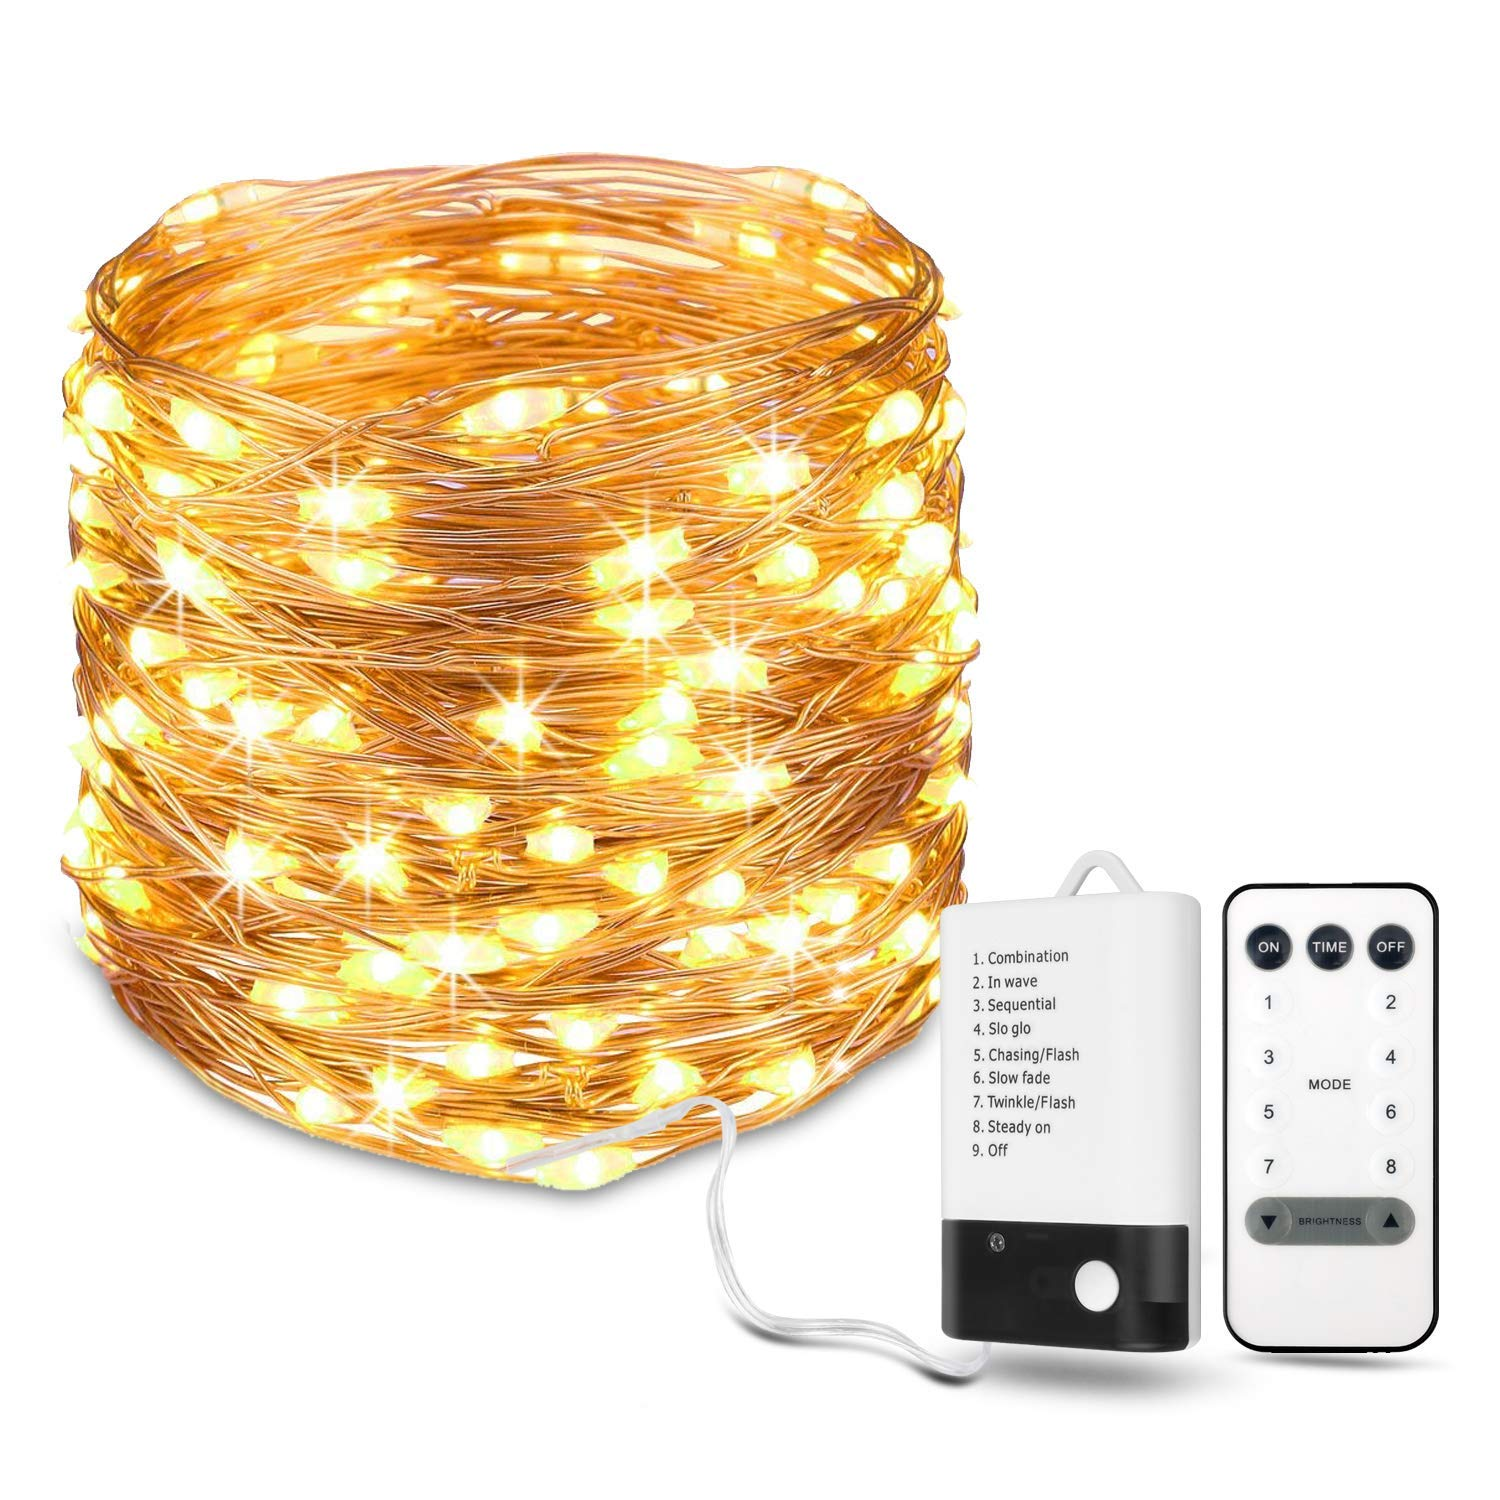 8879e23c6f7a USB LED String Lights, 12m 120 LED Copper Wire Lights Power Adapter  Included, Warm White Fairy Starry Lights, Decorative Firefly Lights for  Party Wedding ...